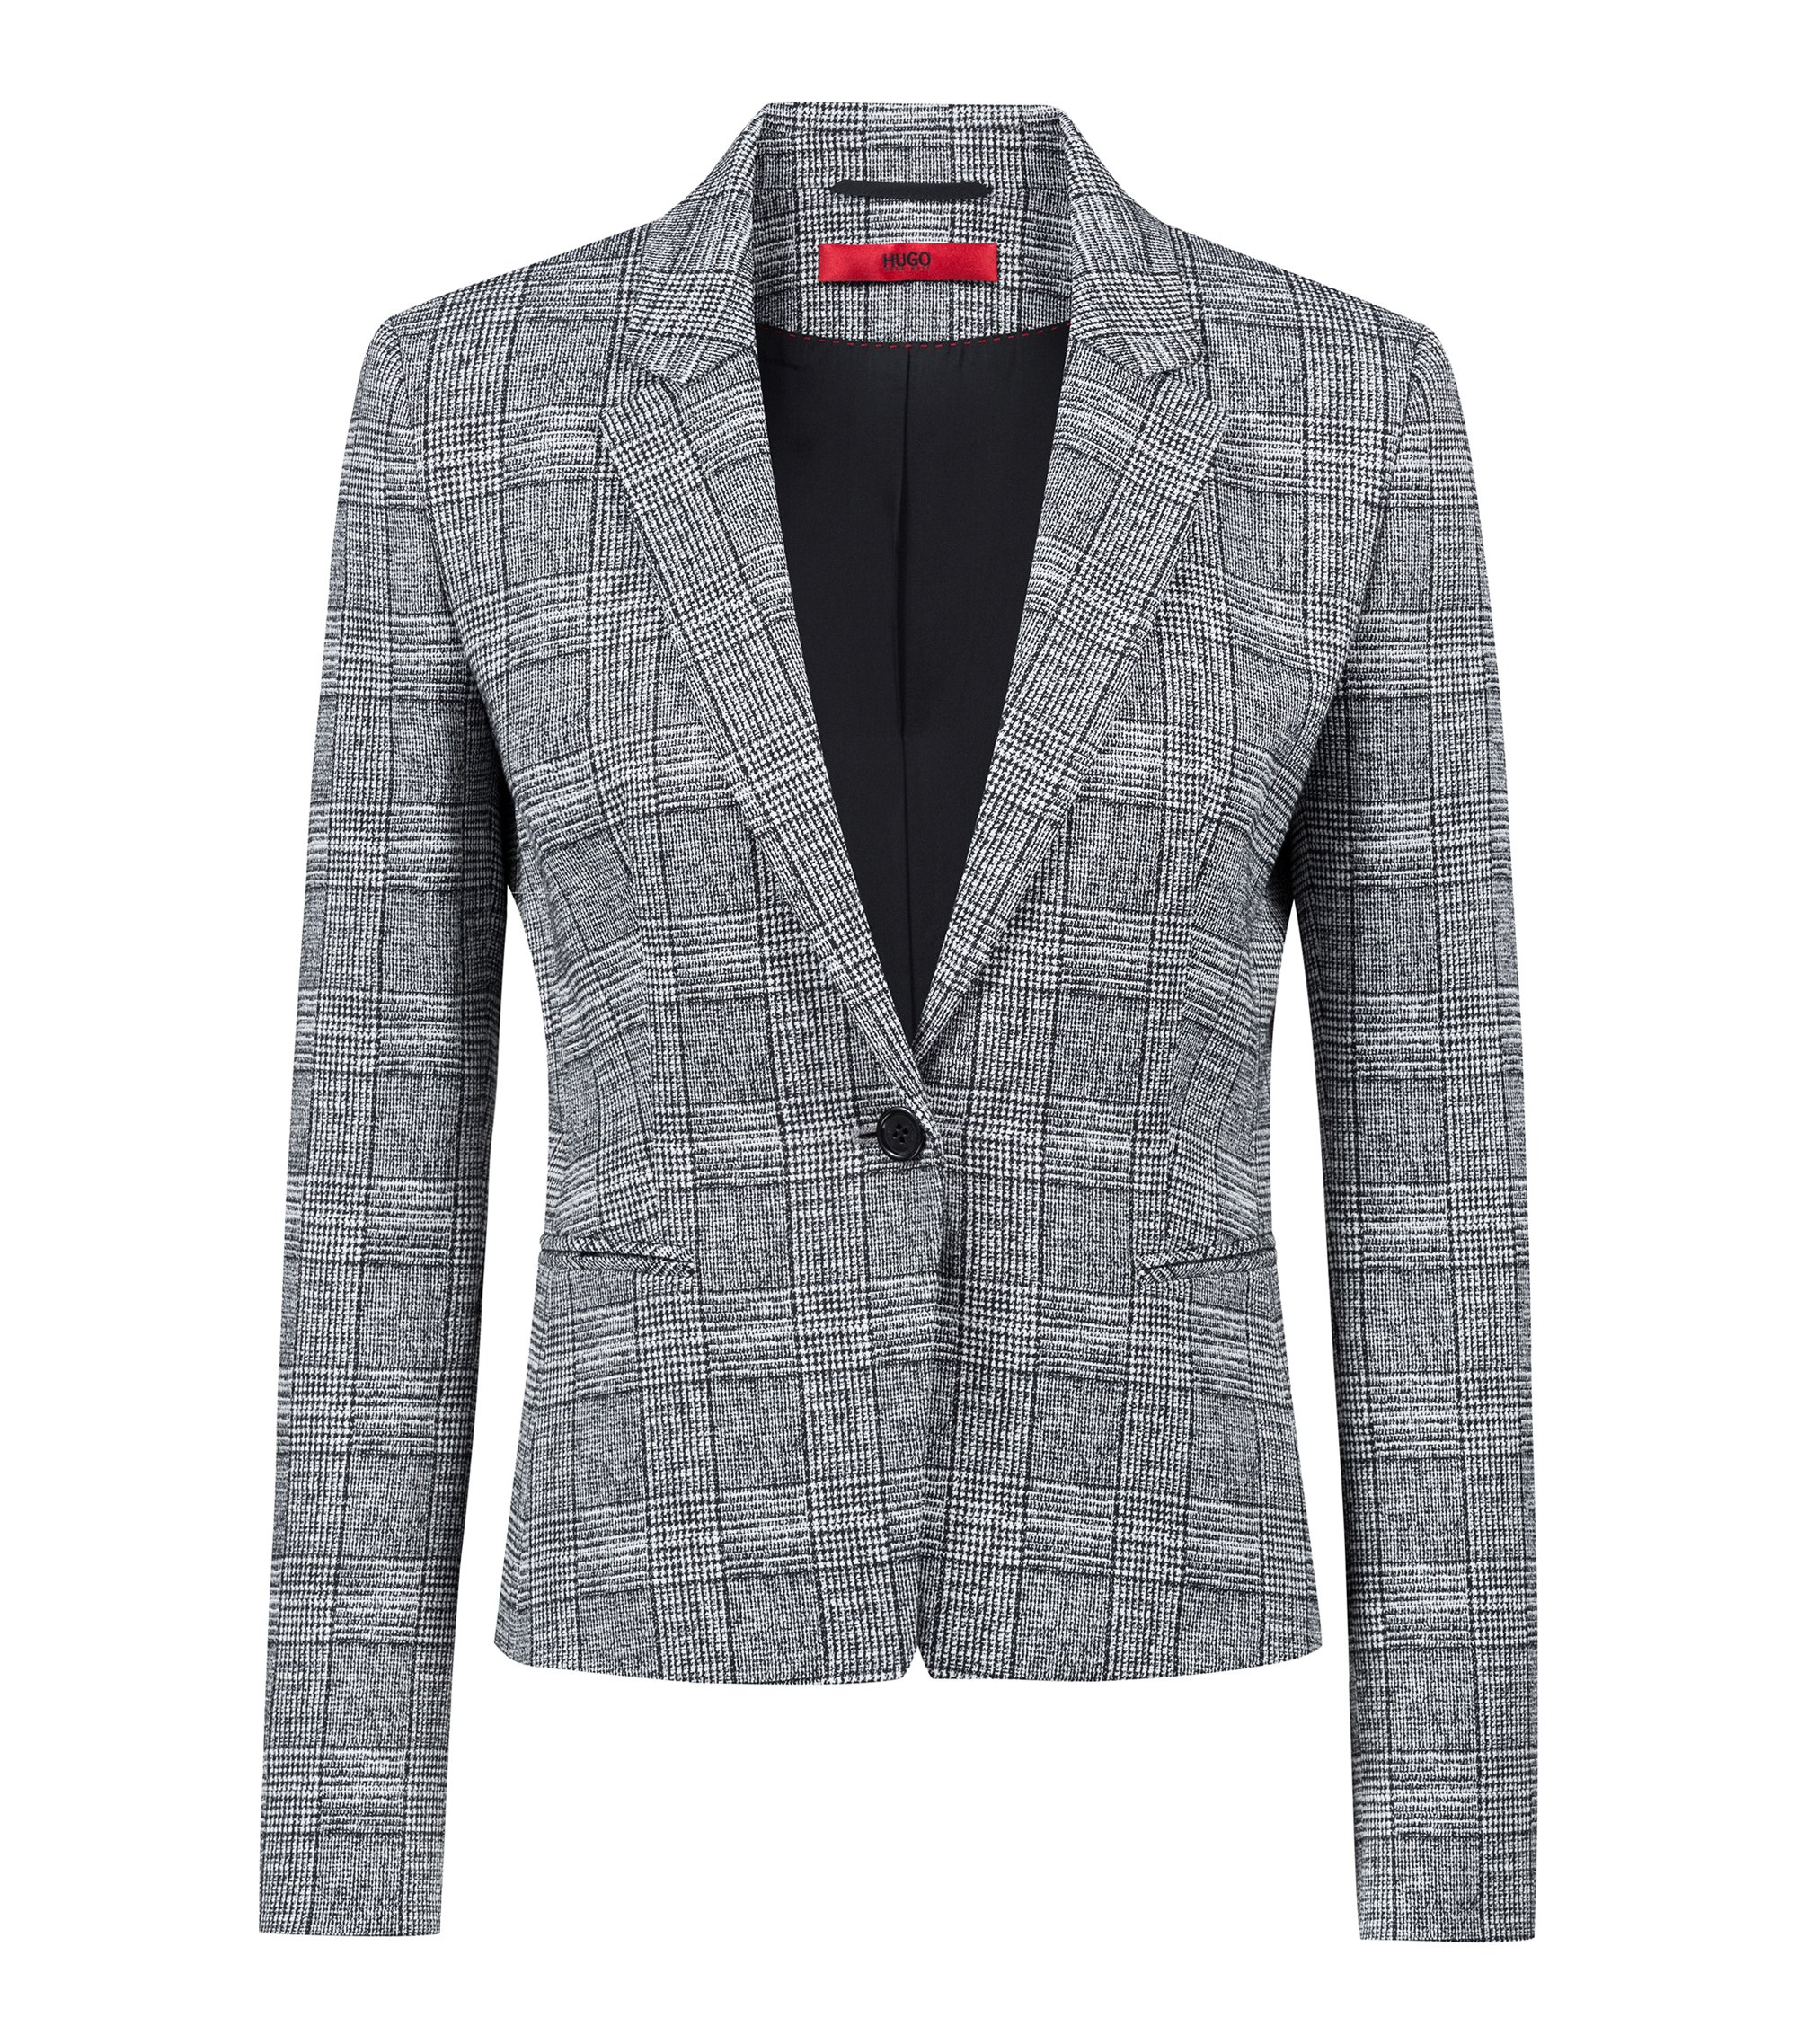 Slim-fit blazer in black-and-white check, Patterned